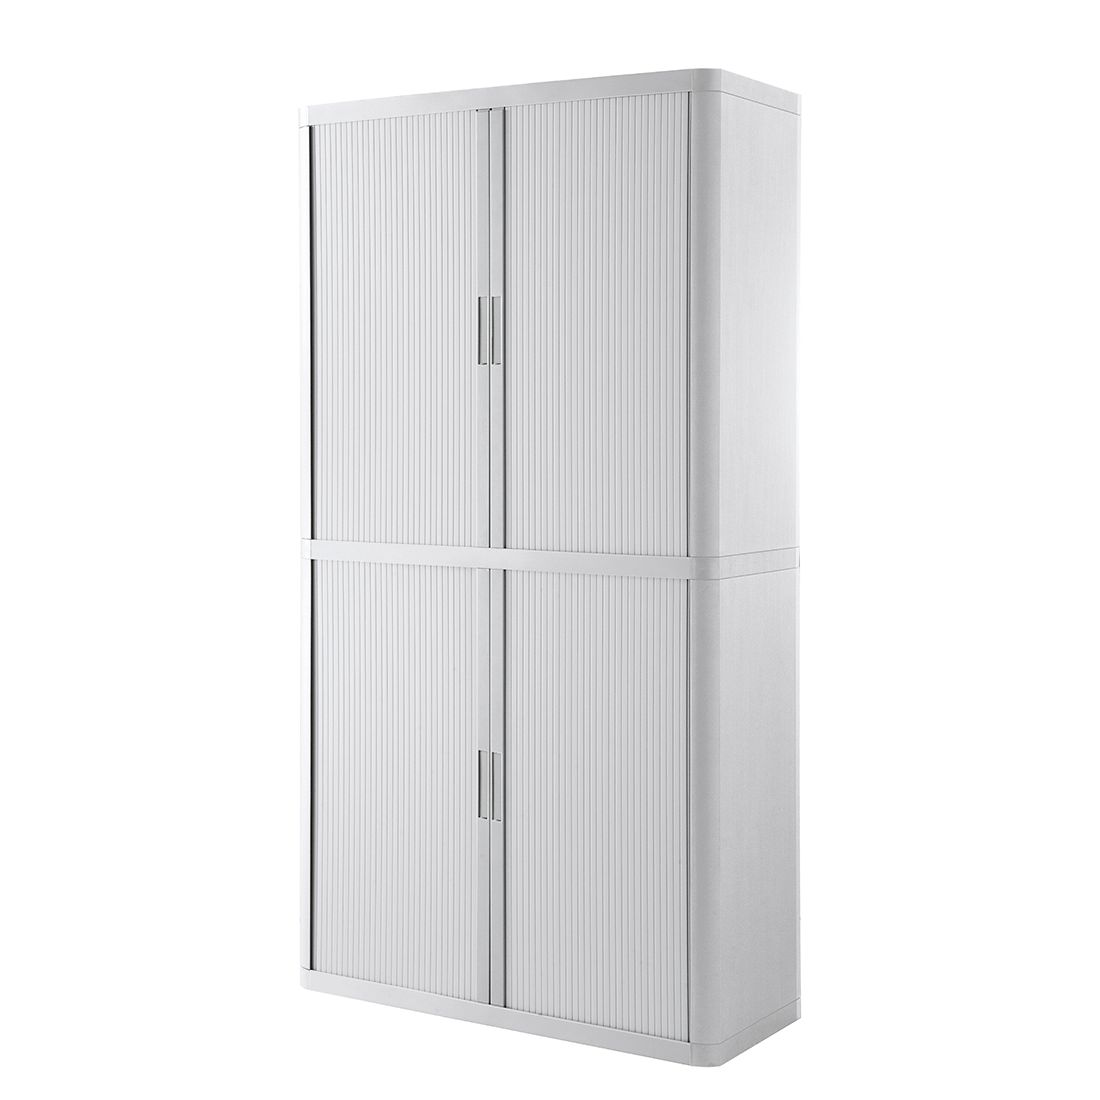 Armadio archivio easyOffice - Bianco - 204 cm, easy Office und Paperflow